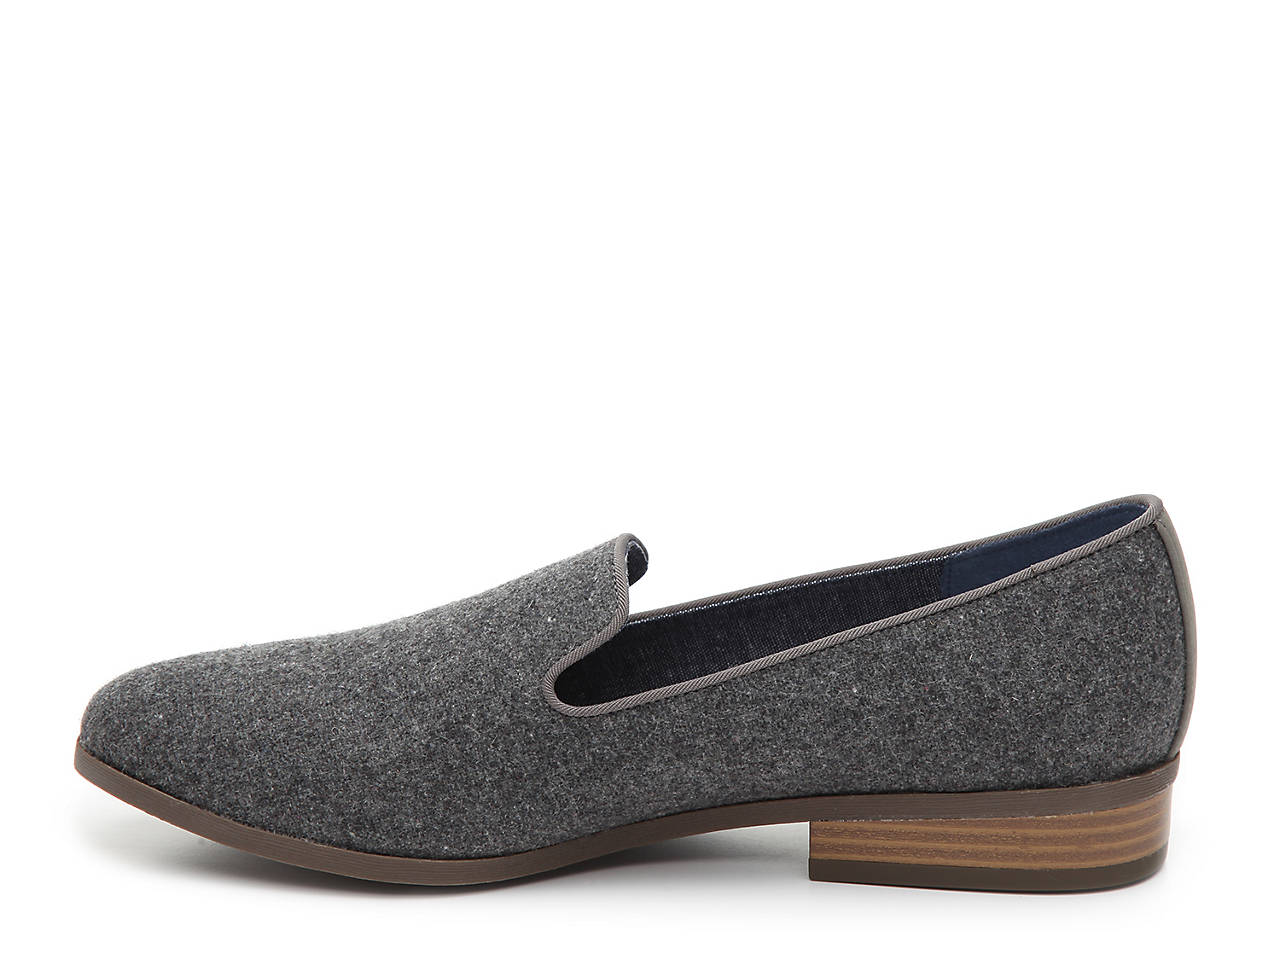 59fa6e03867 Dr. Scholl s Emperor Loafer Women s Shoes